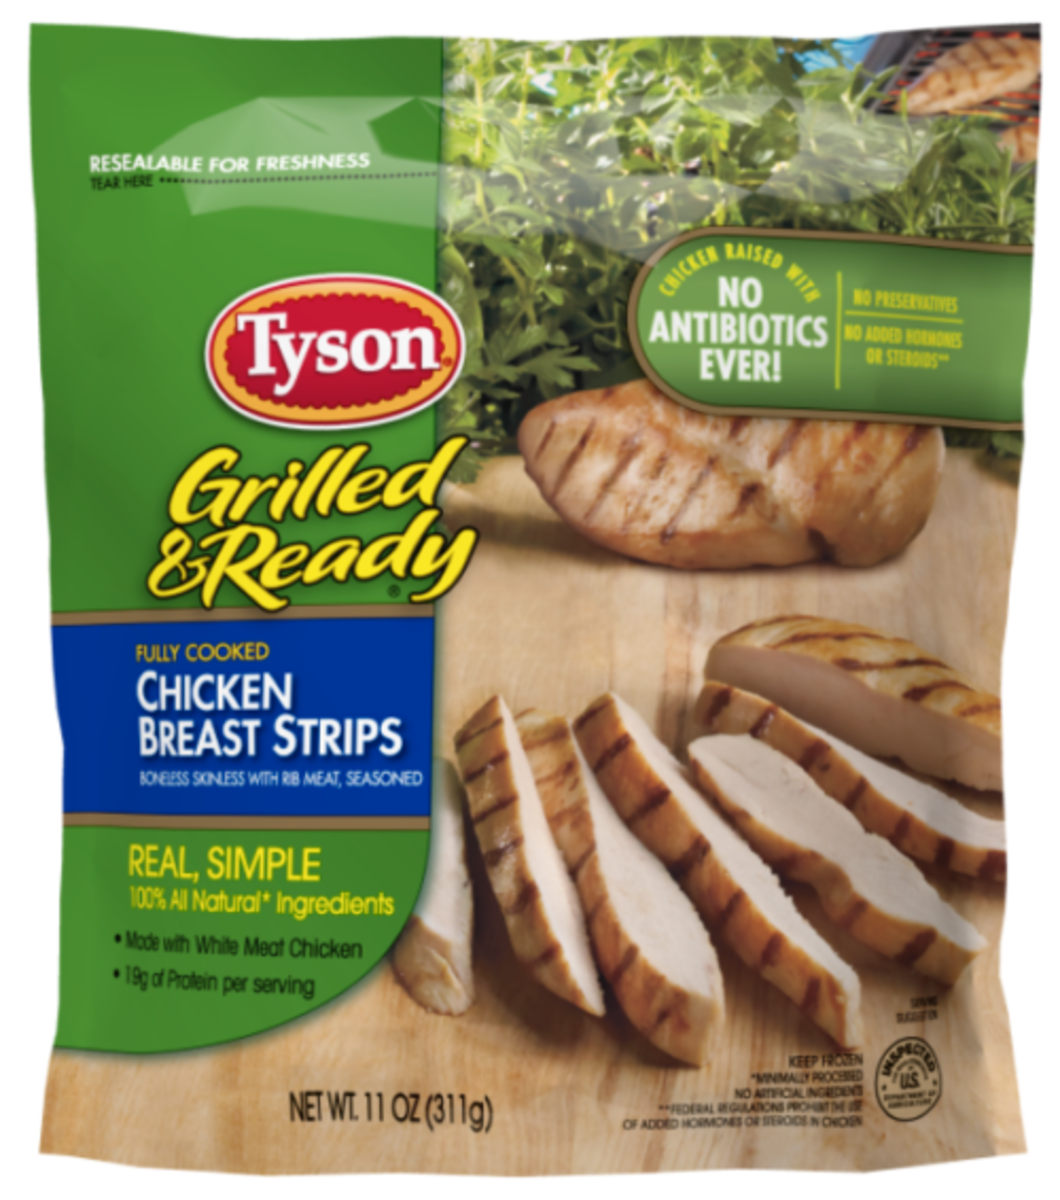 Tyson Grilled and Ready Chicken